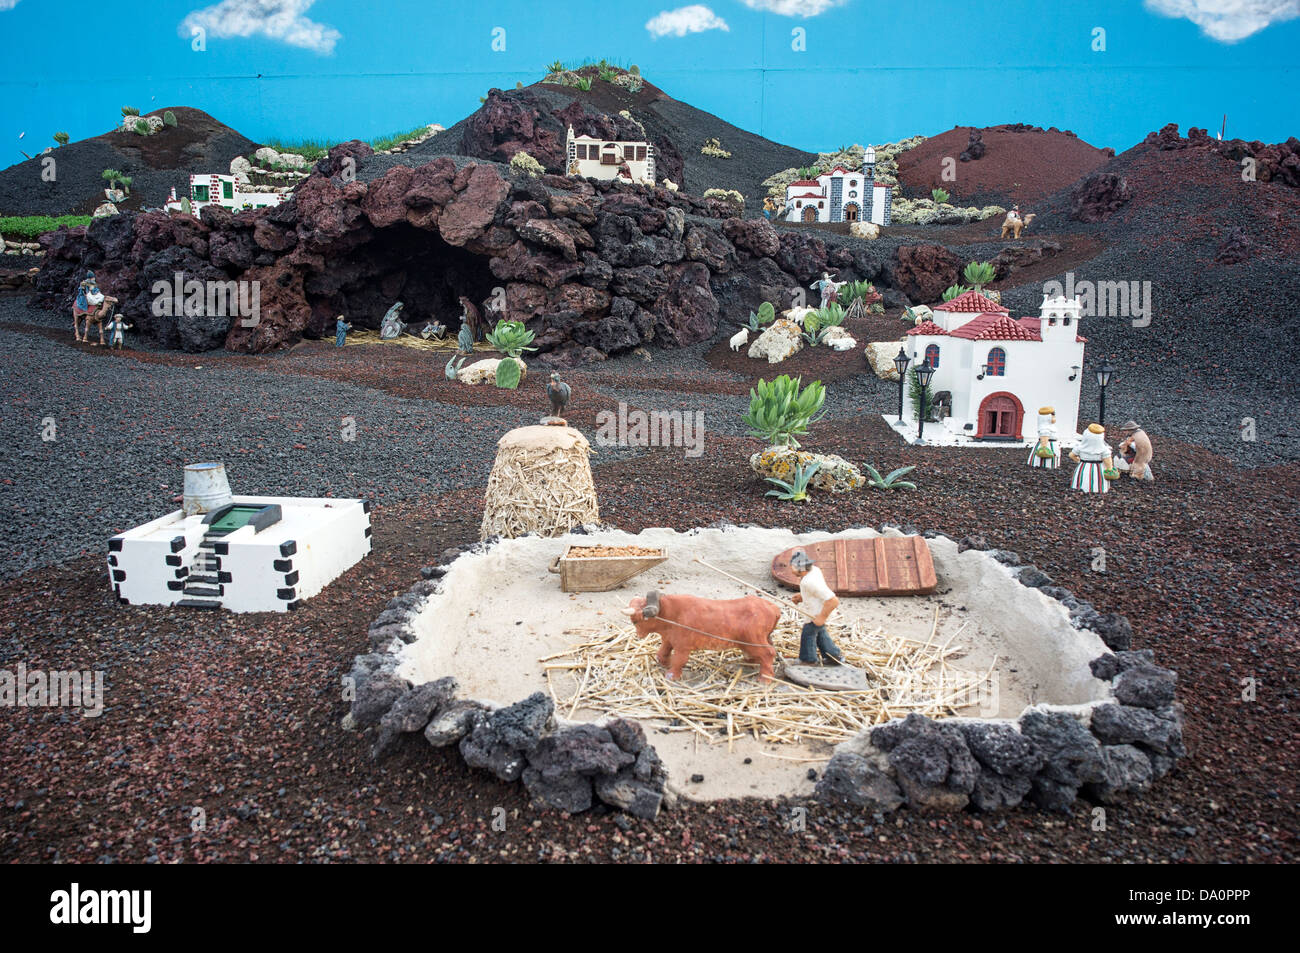 Christmas Manger in Yaiza, Lanzarote, Canary Islands, Spain - Stock Image